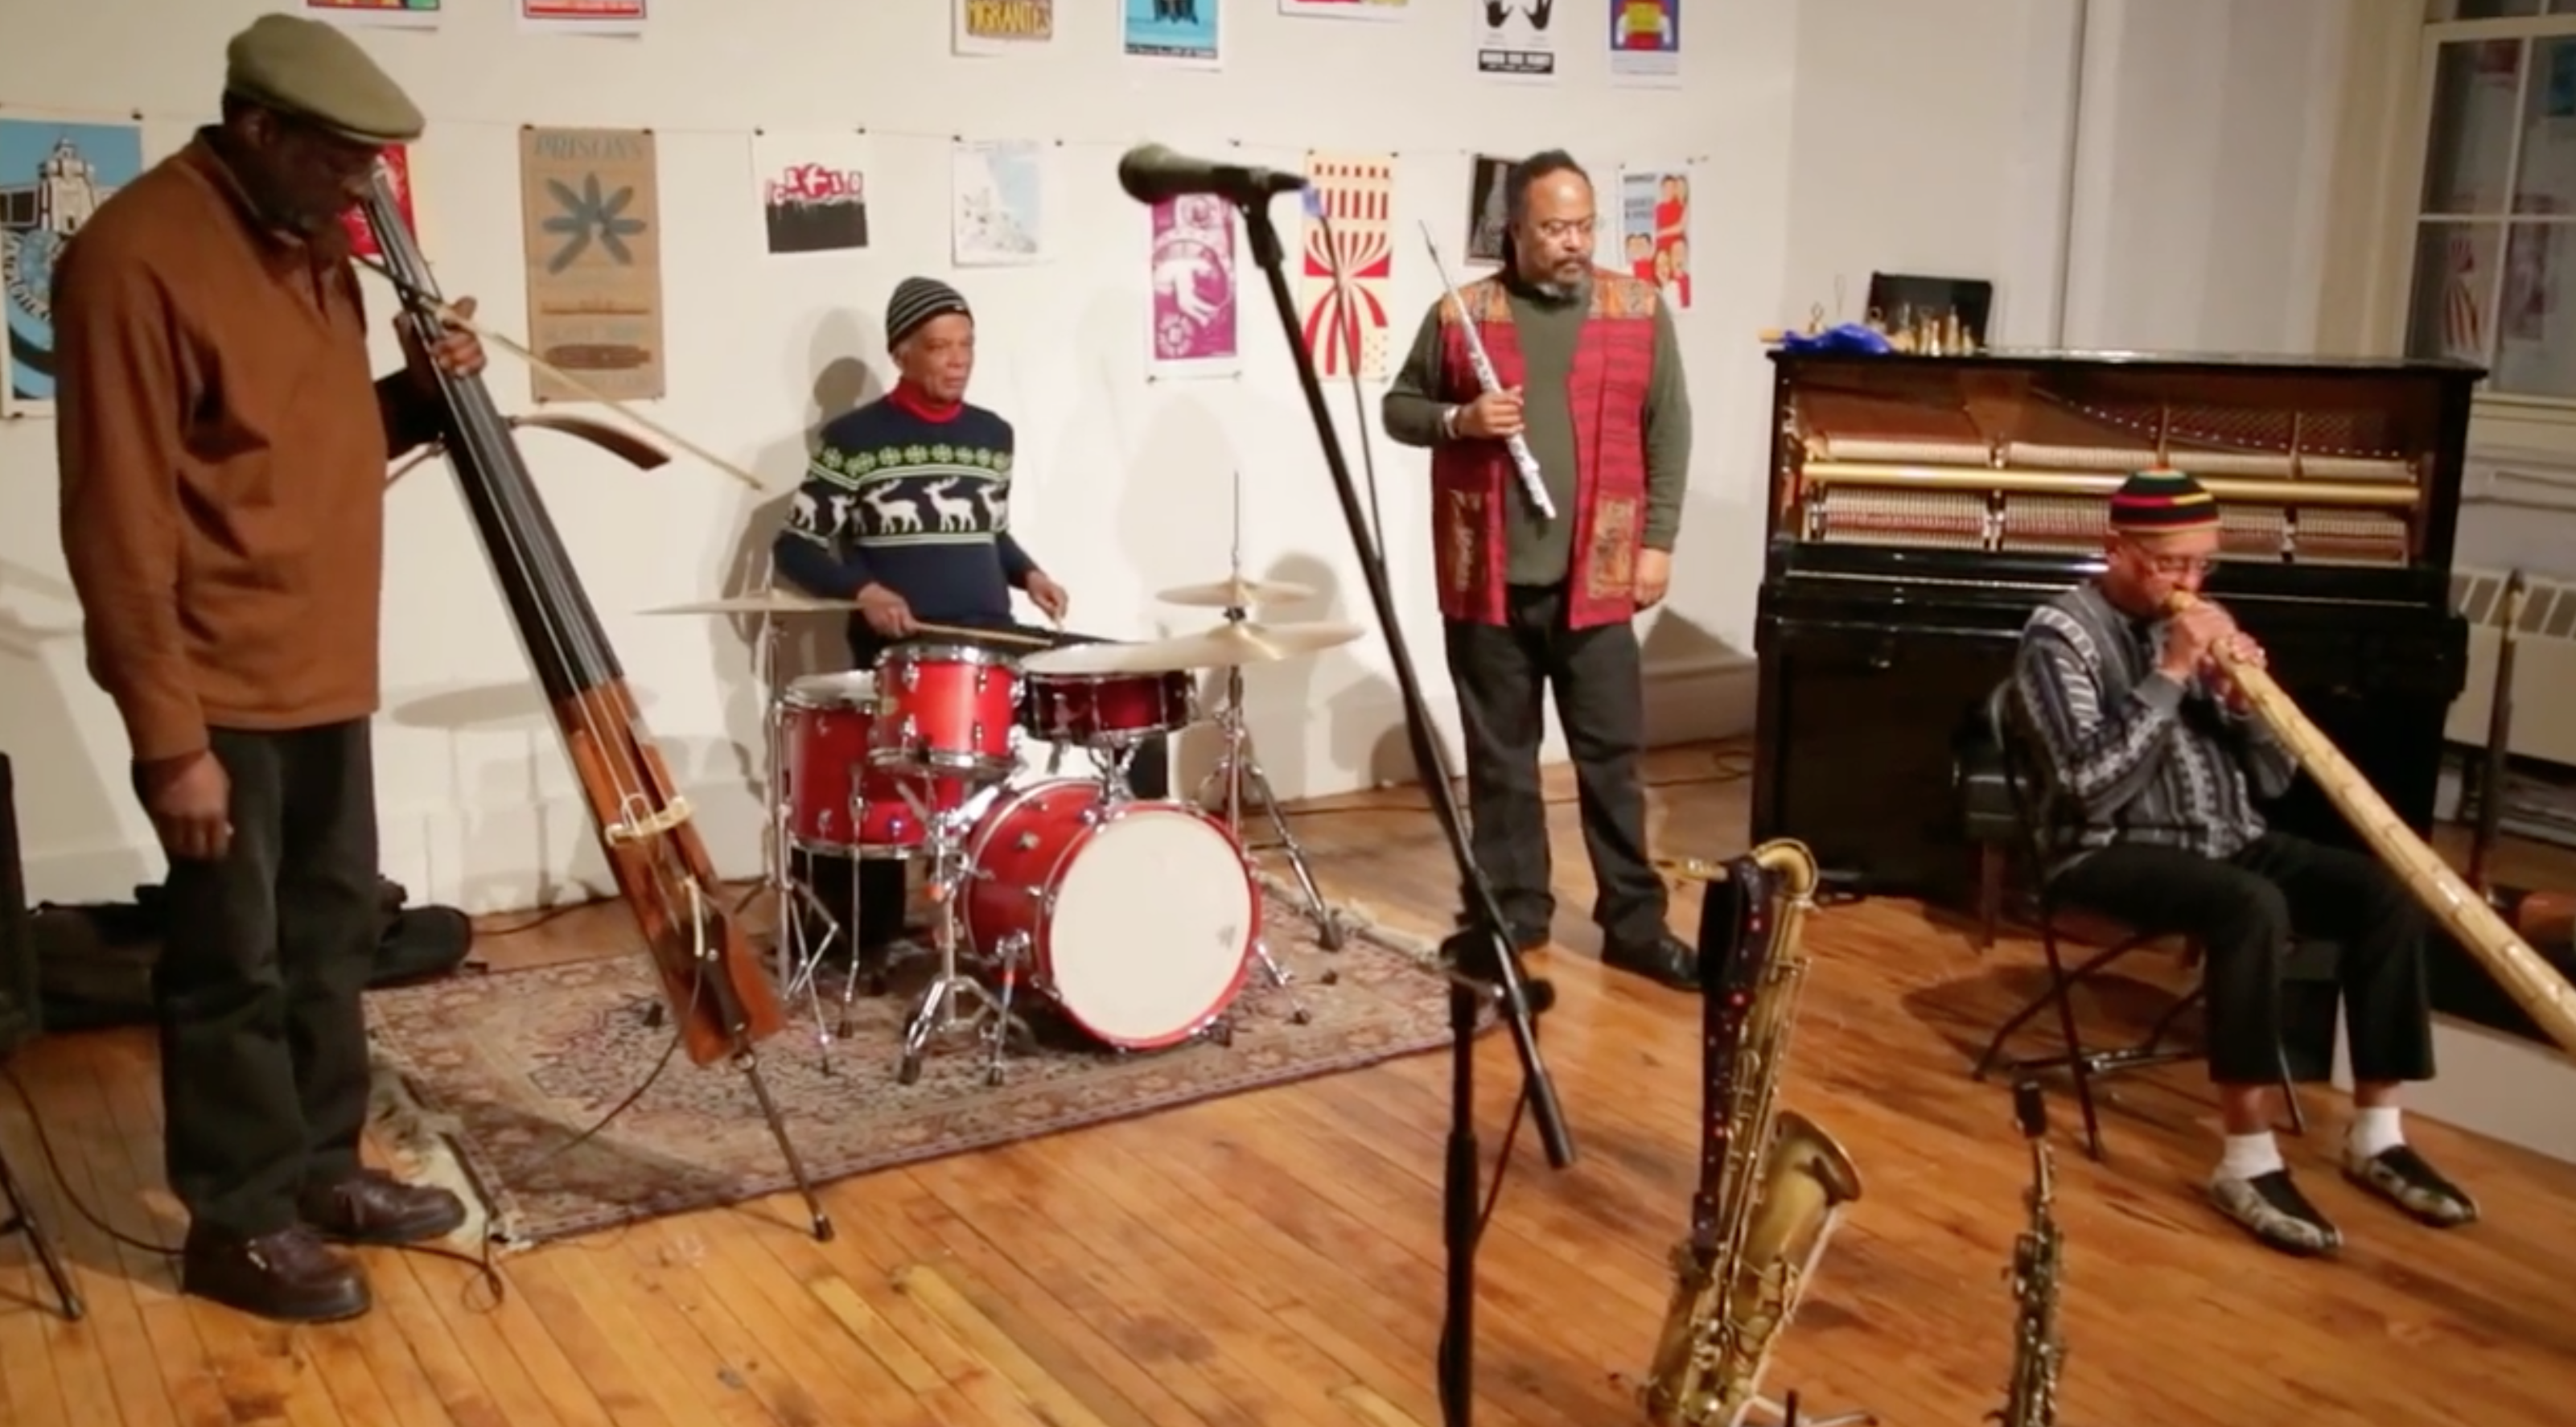 Ras Moshe's Music Now! Unit @ Arts For Art (Not A Police State) [Jan – 22]